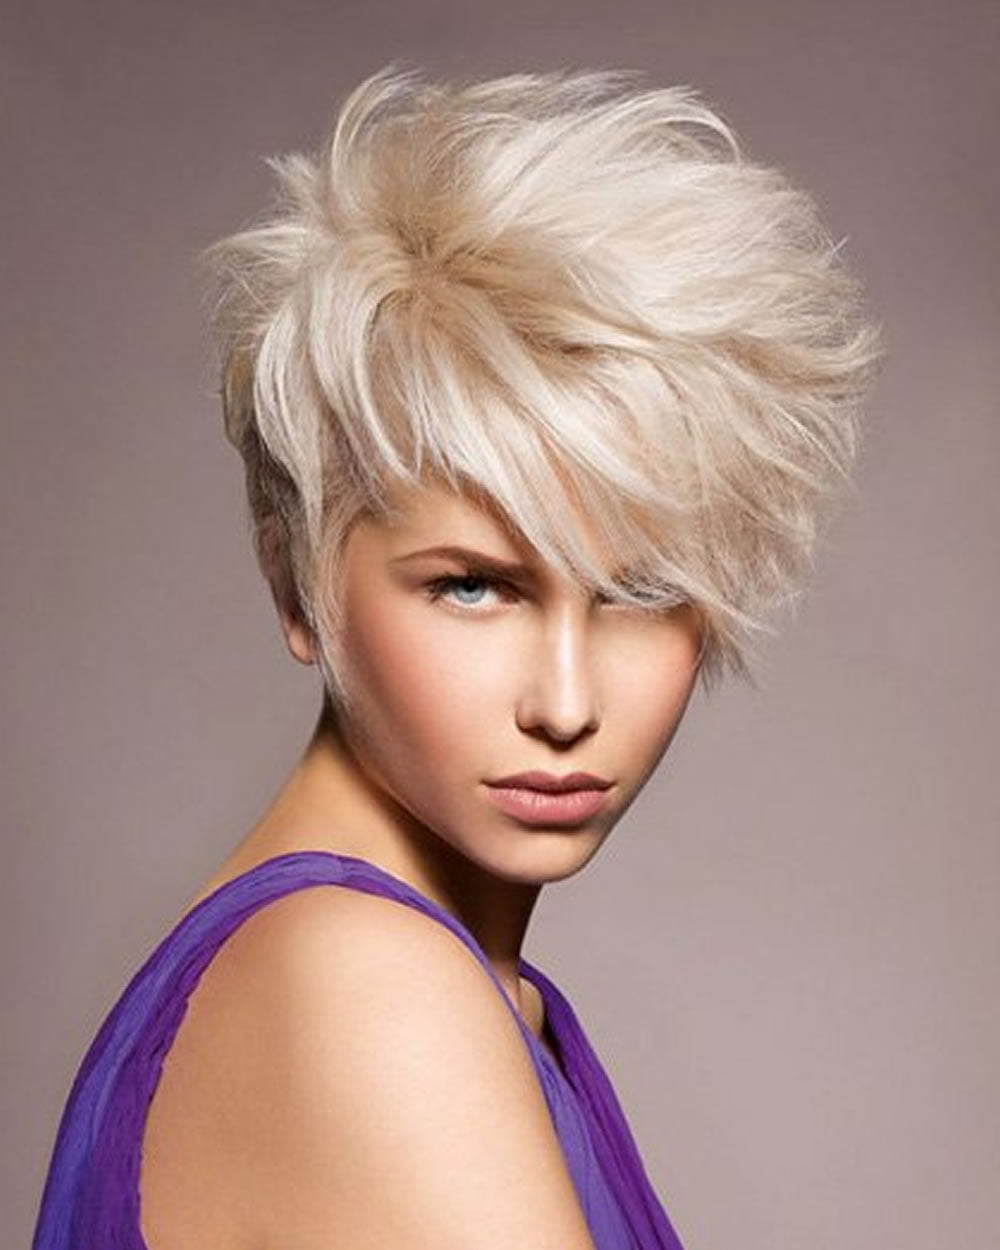 short haircut blonde nakef